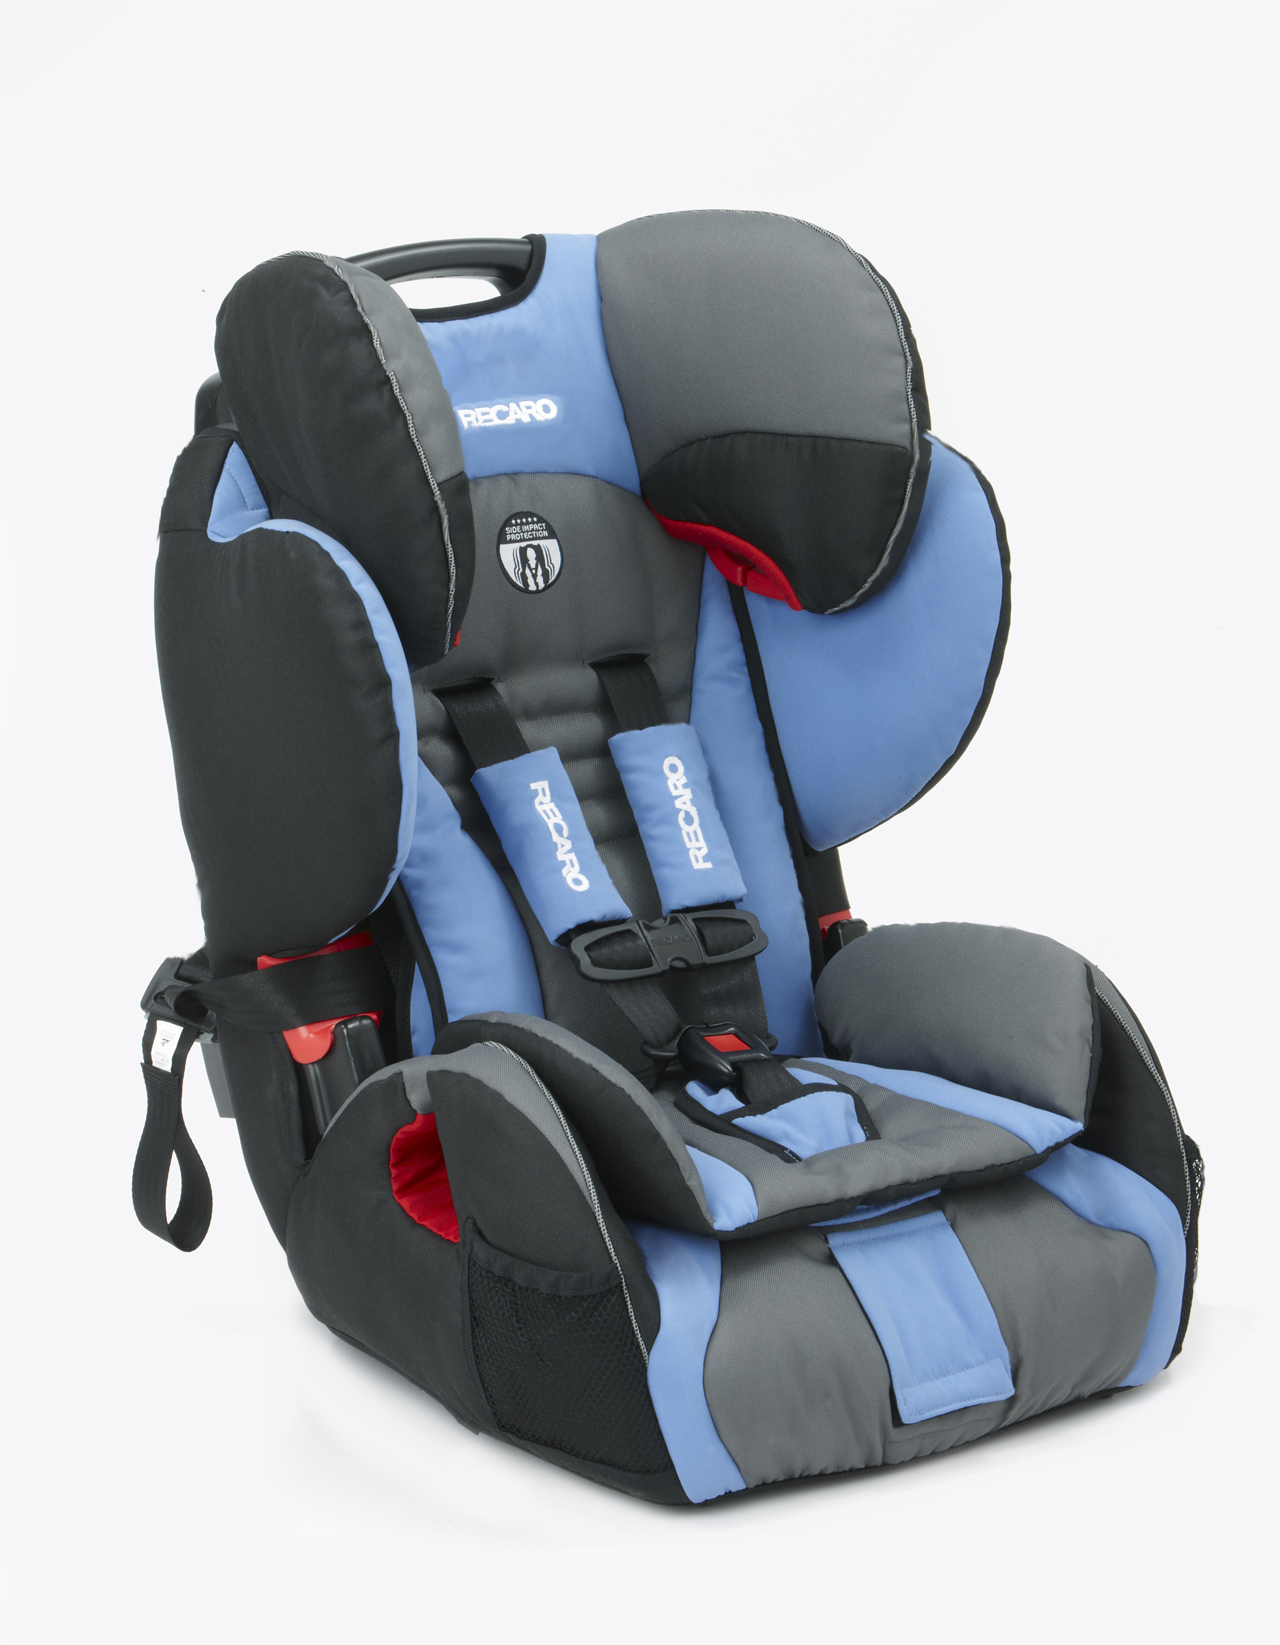 Recaro Baby Seat Parts Recaro Launches Proseries Child Safety Seats Top Speed